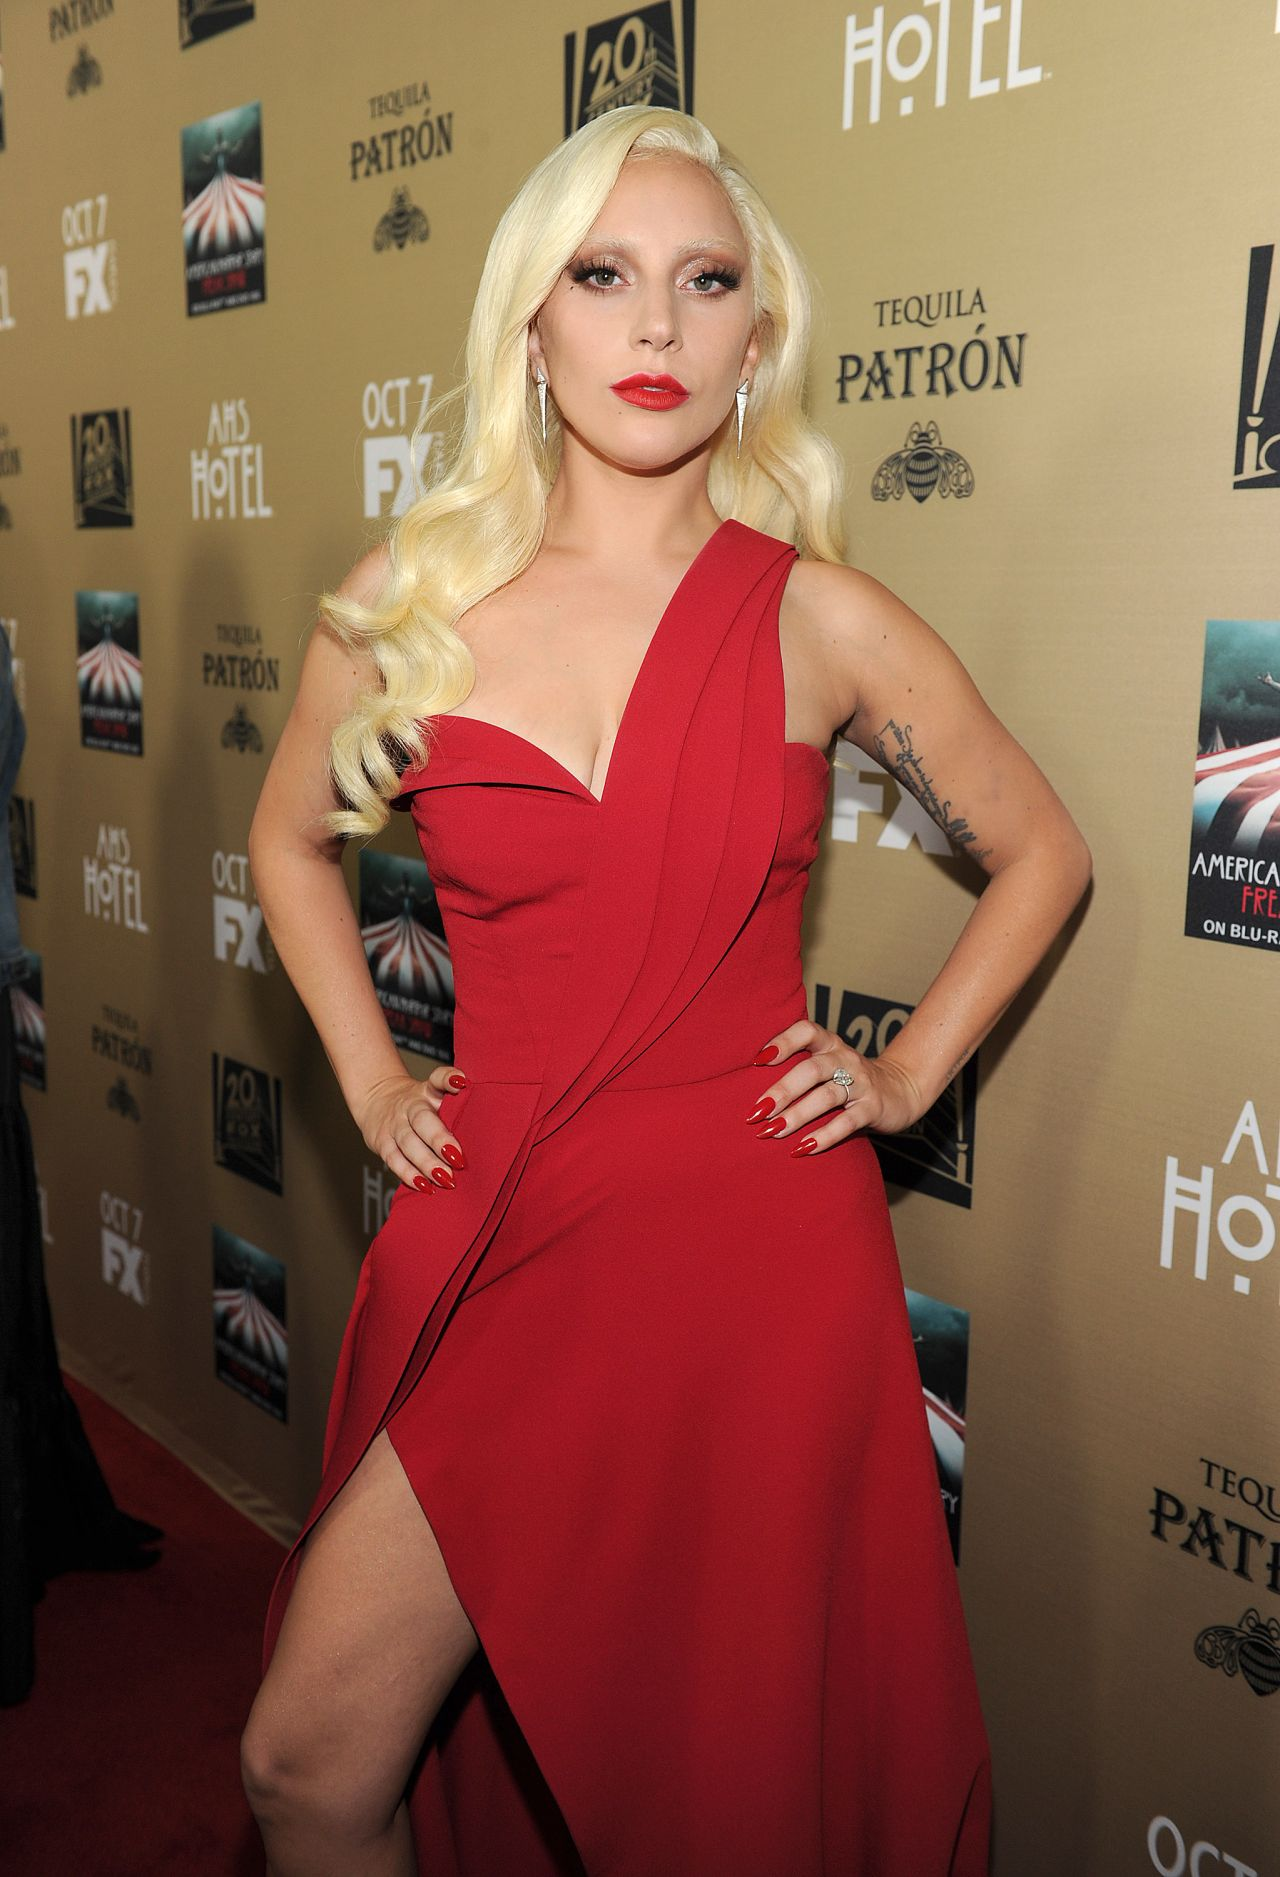 lady-gaga-fx-s-american-horror-story-hotel-screening-in-los-angeles_1